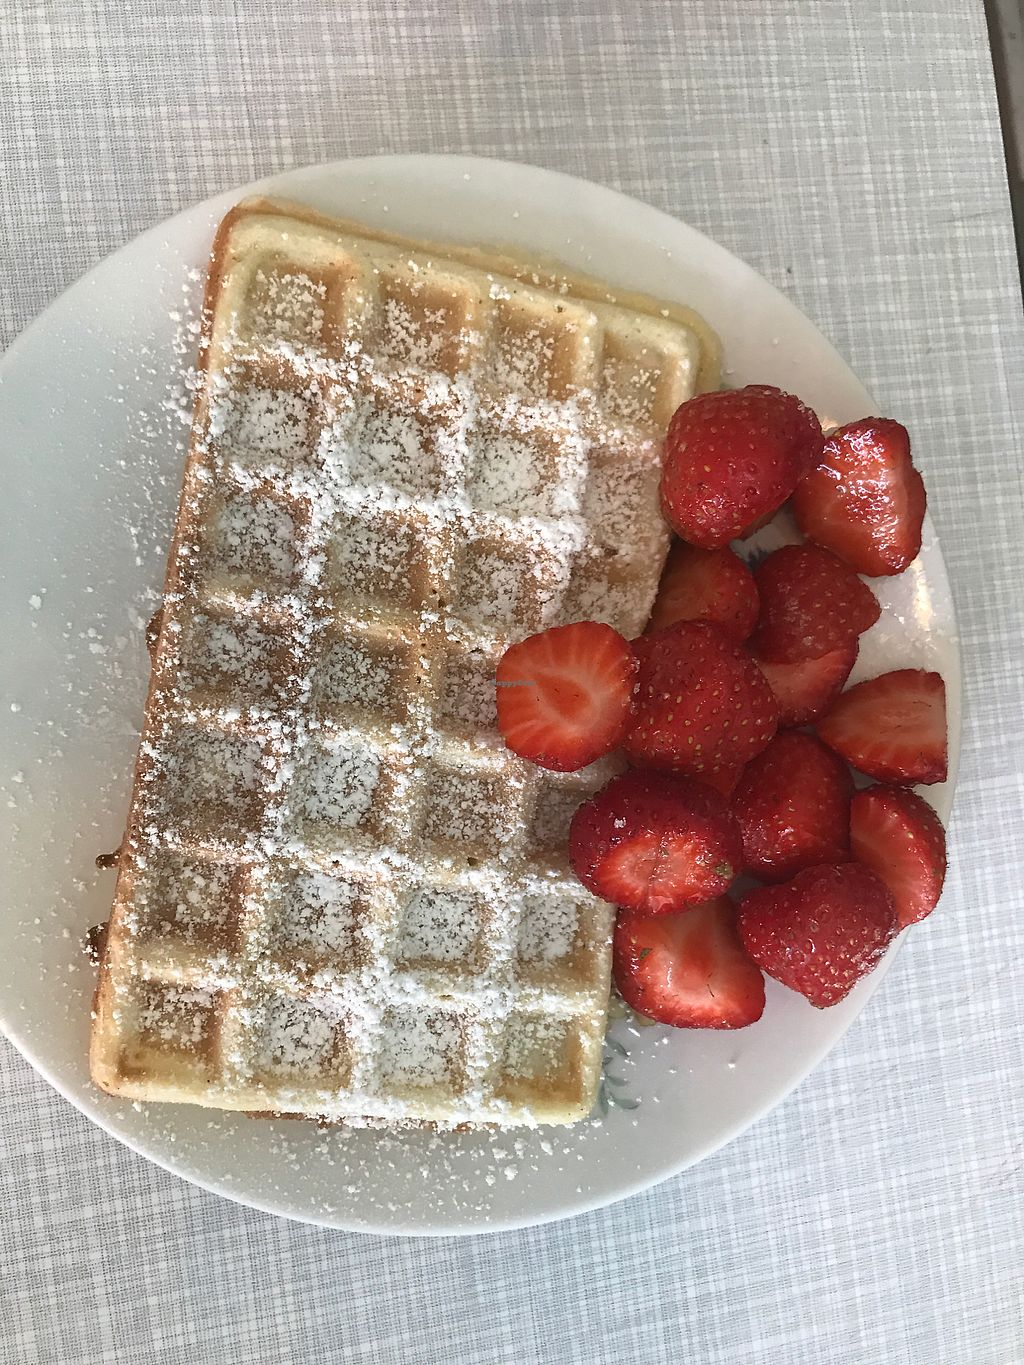 """Photo of Cafe Hibiskus  by <a href=""""/members/profile/Skye"""">Skye</a> <br/>waffle with berries <br/> July 22, 2017  - <a href='/contact/abuse/image/43348/283168'>Report</a>"""